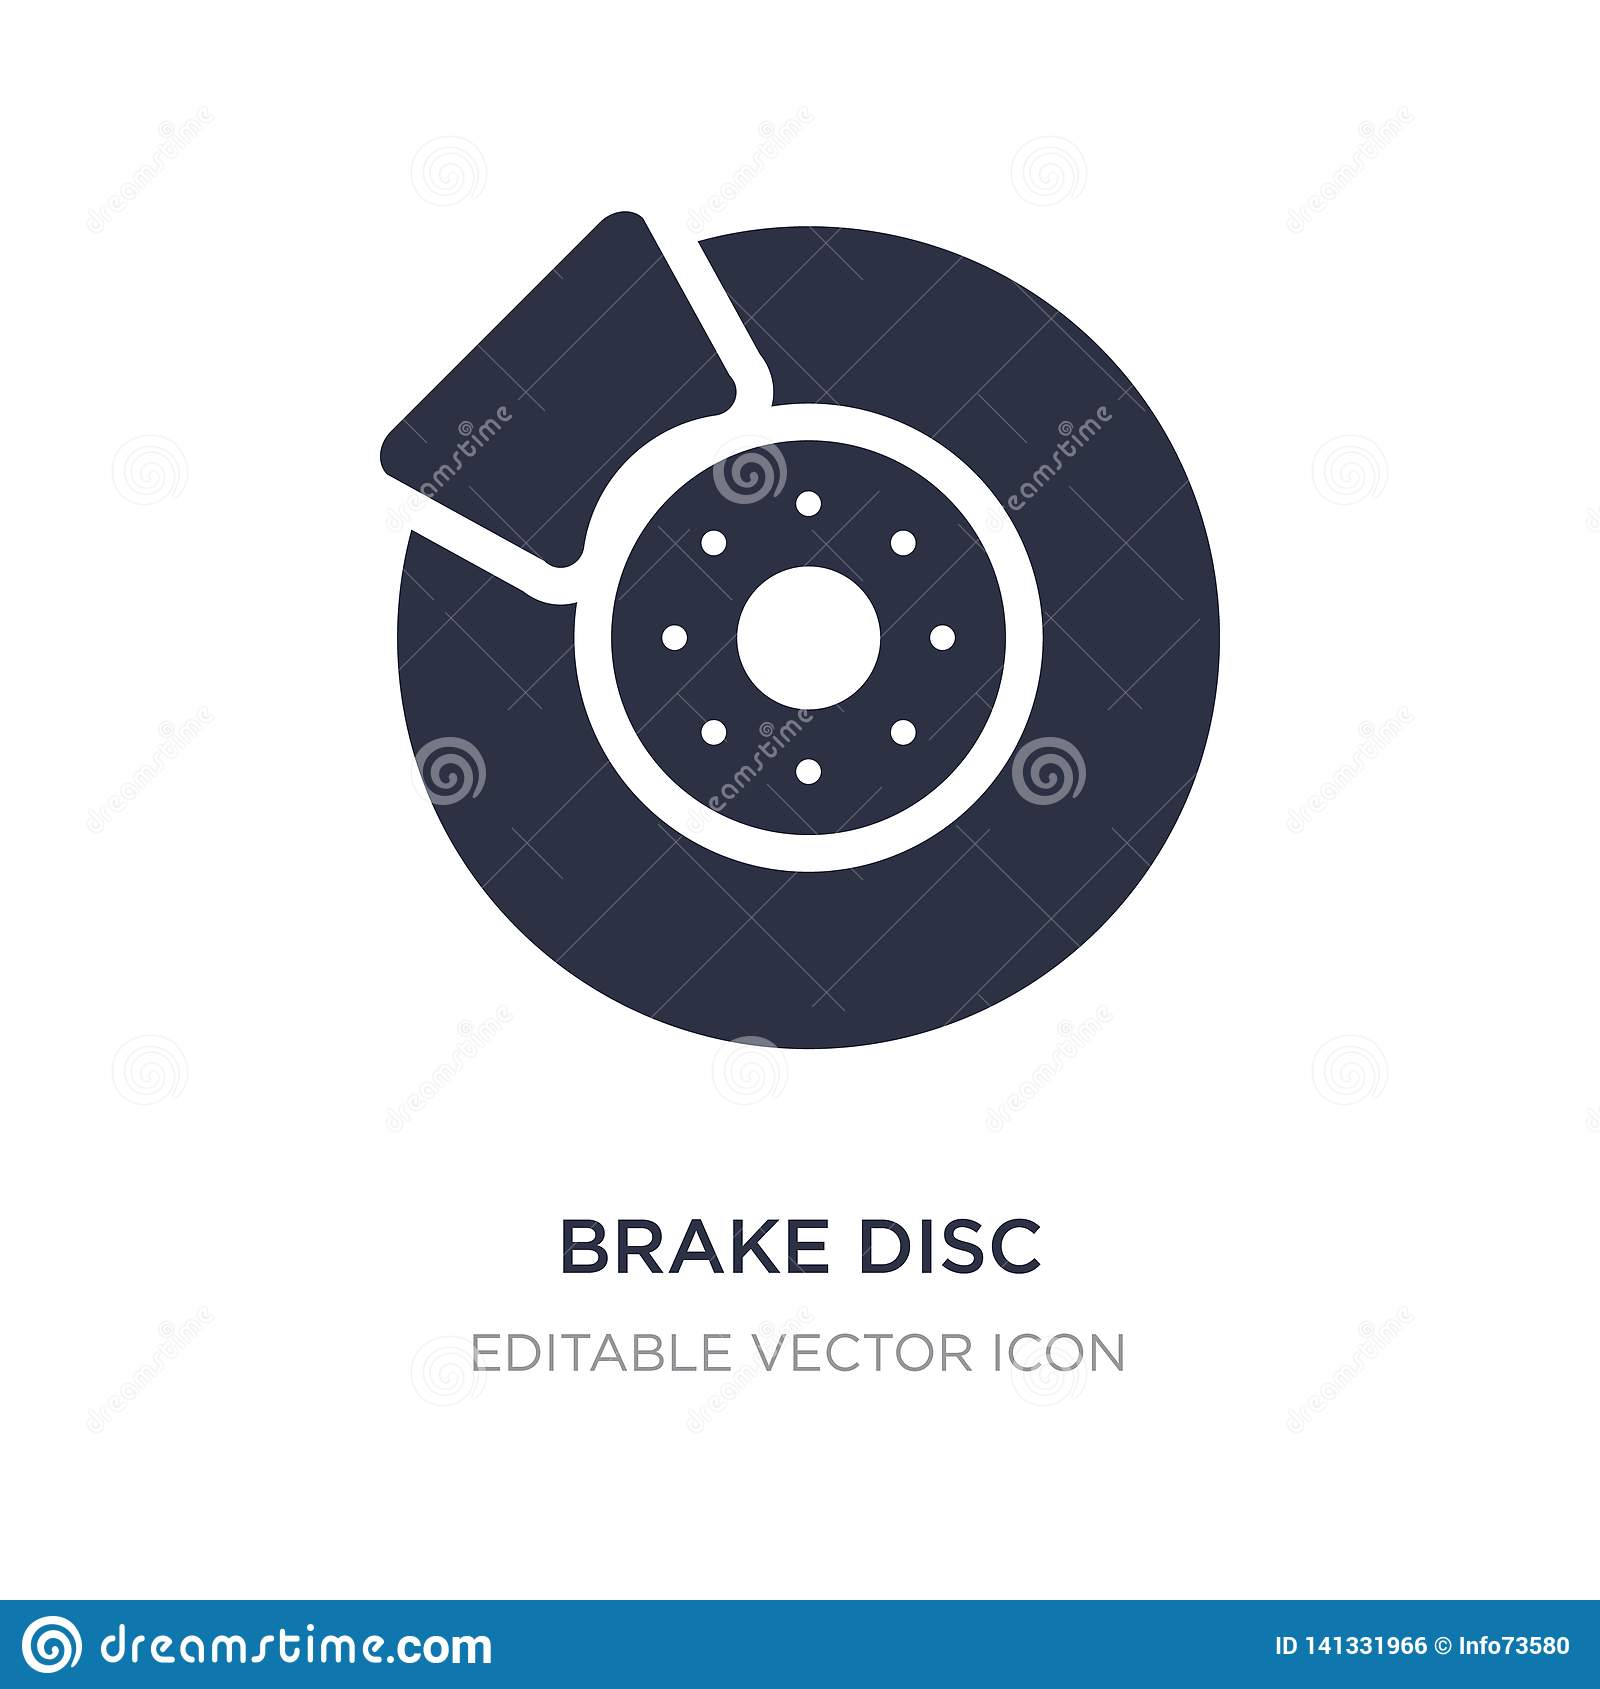 brake disc icon on white background. Simple element illustration from Transportation concept